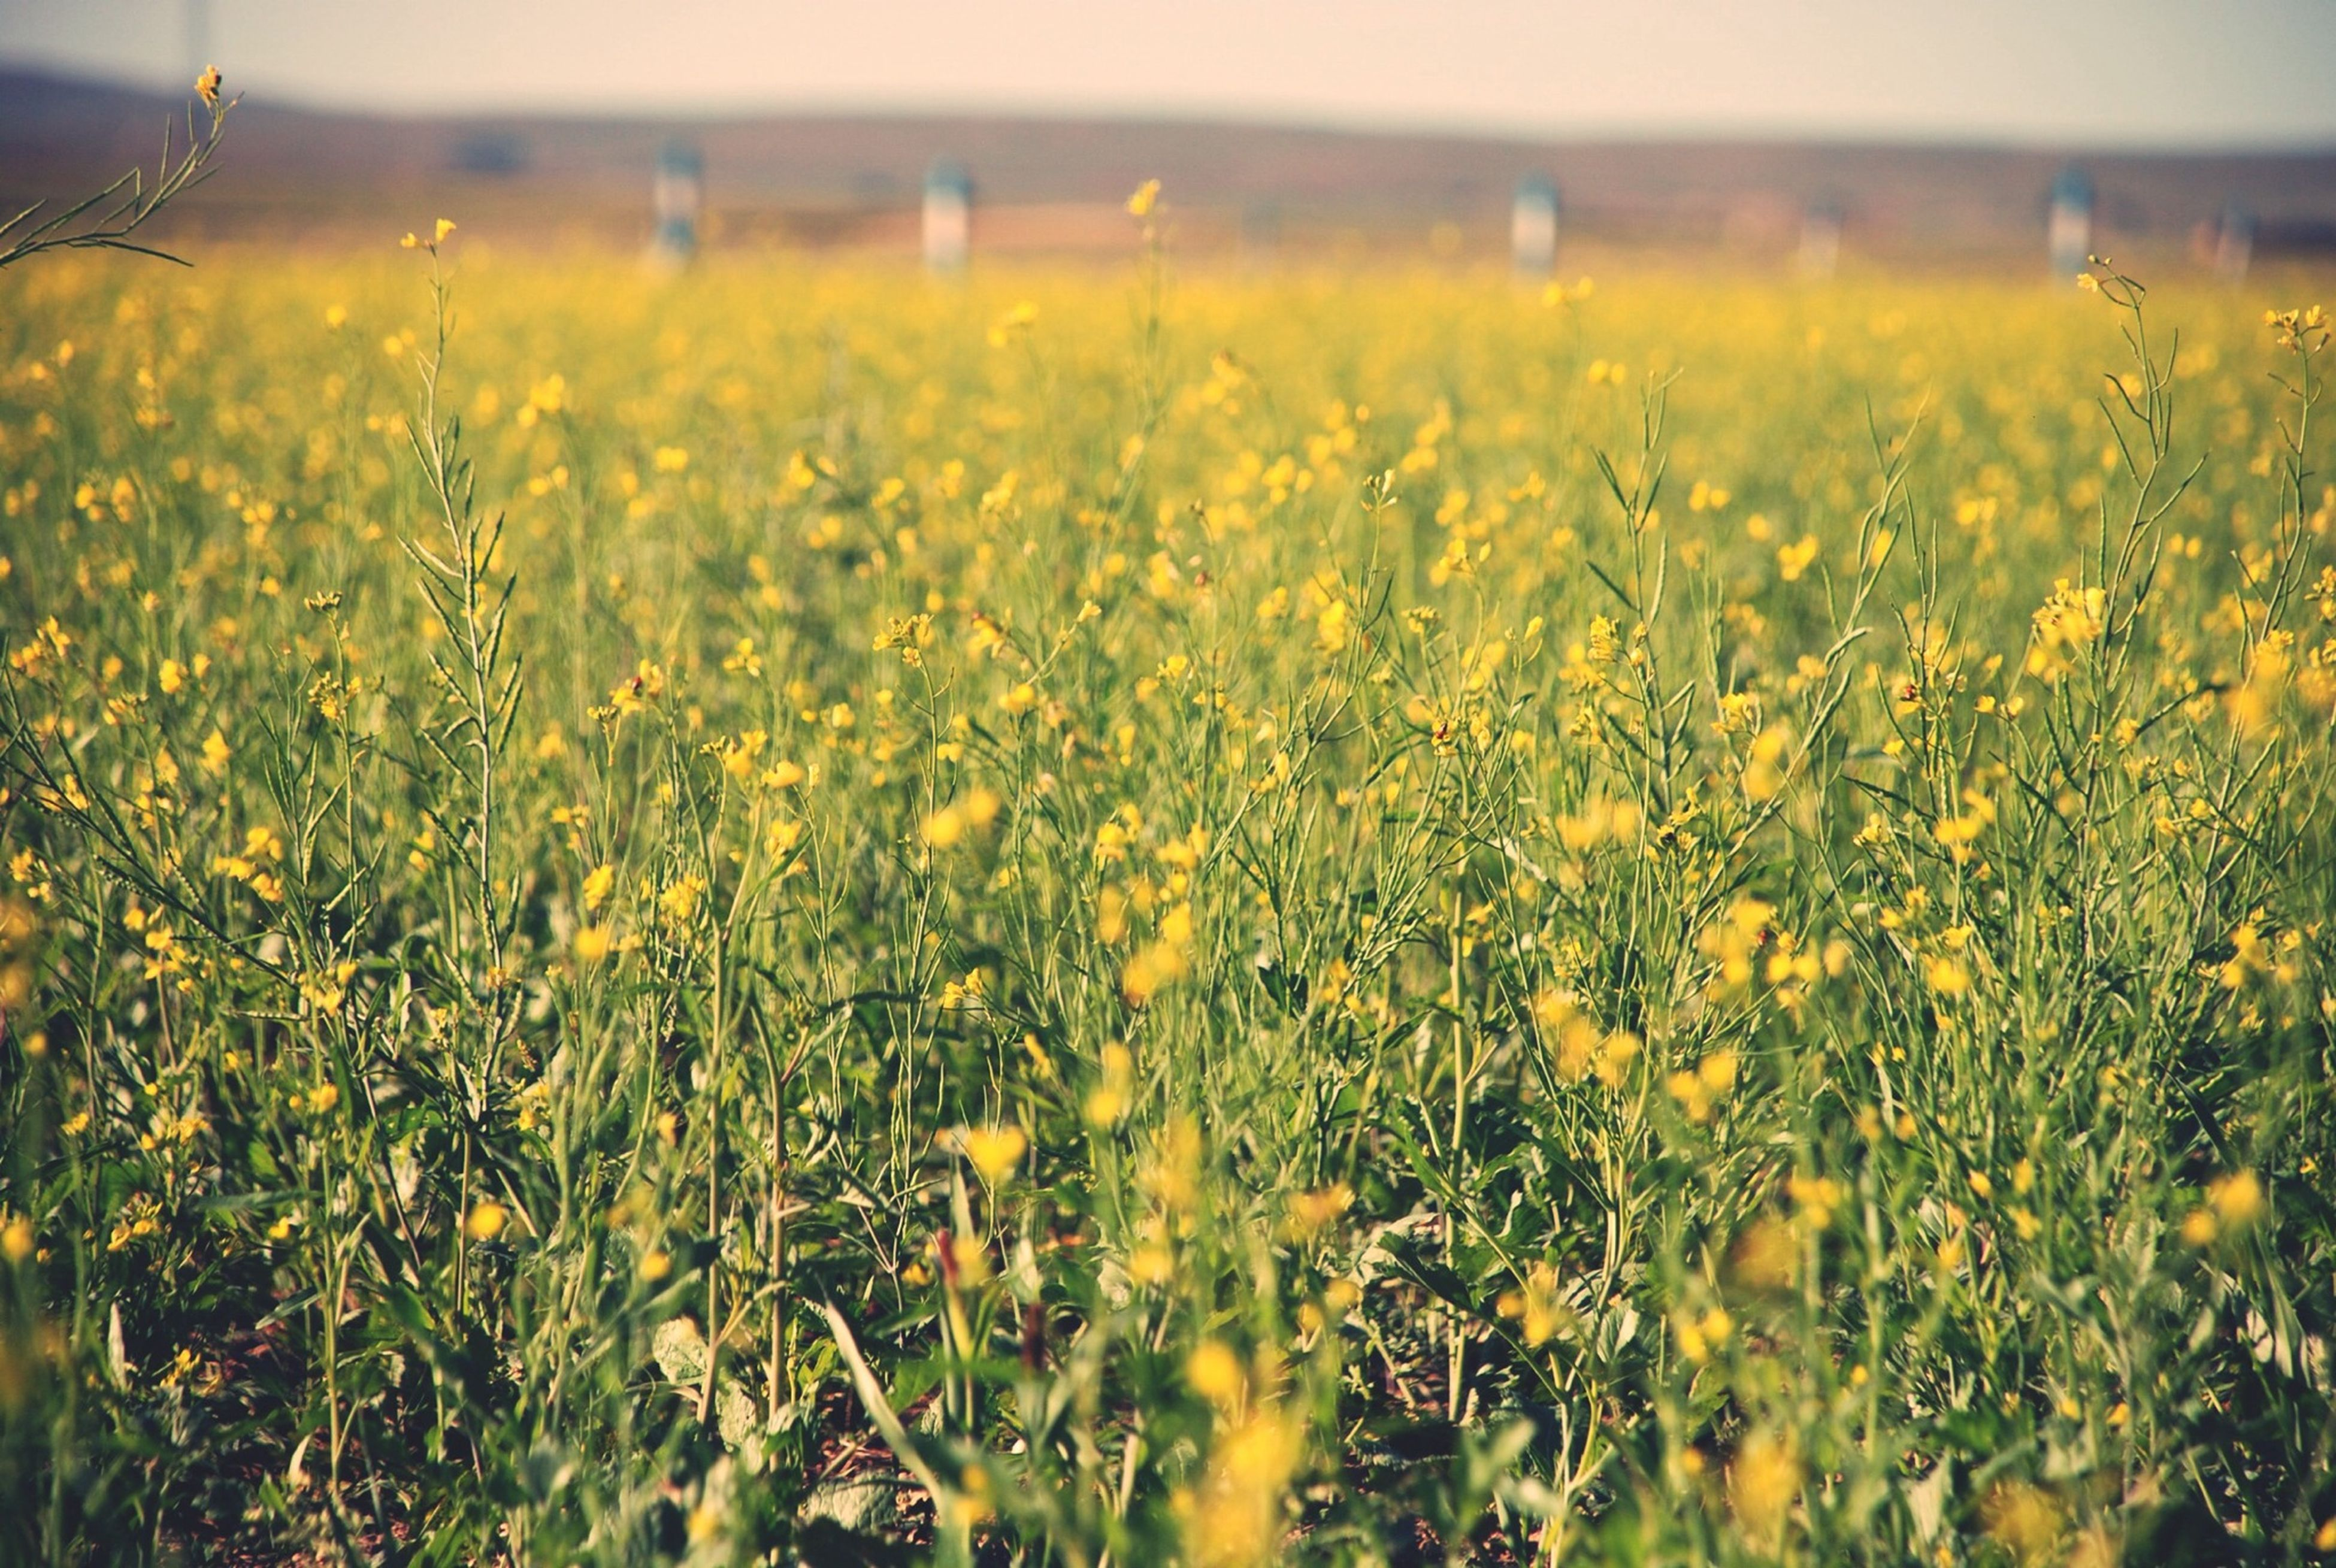 field, flower, growth, agriculture, rural scene, yellow, beauty in nature, freshness, farm, nature, crop, landscape, plant, tranquil scene, fragility, tranquility, scenics, focus on foreground, cultivated land, grass